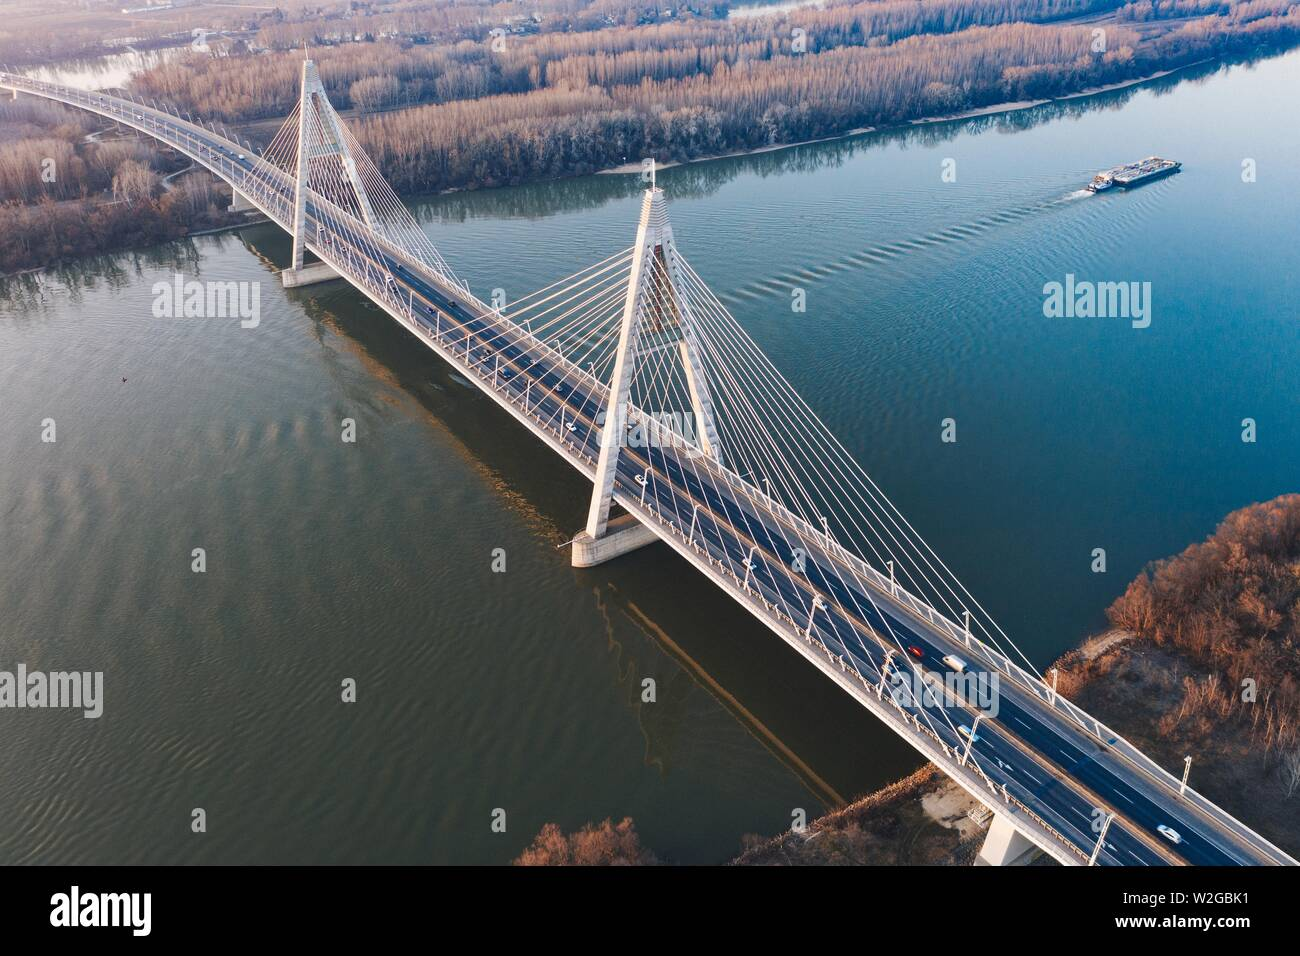 An aerial beautiful shot of a suspension bridge over a large river with a boat sailing in it - Stock Image